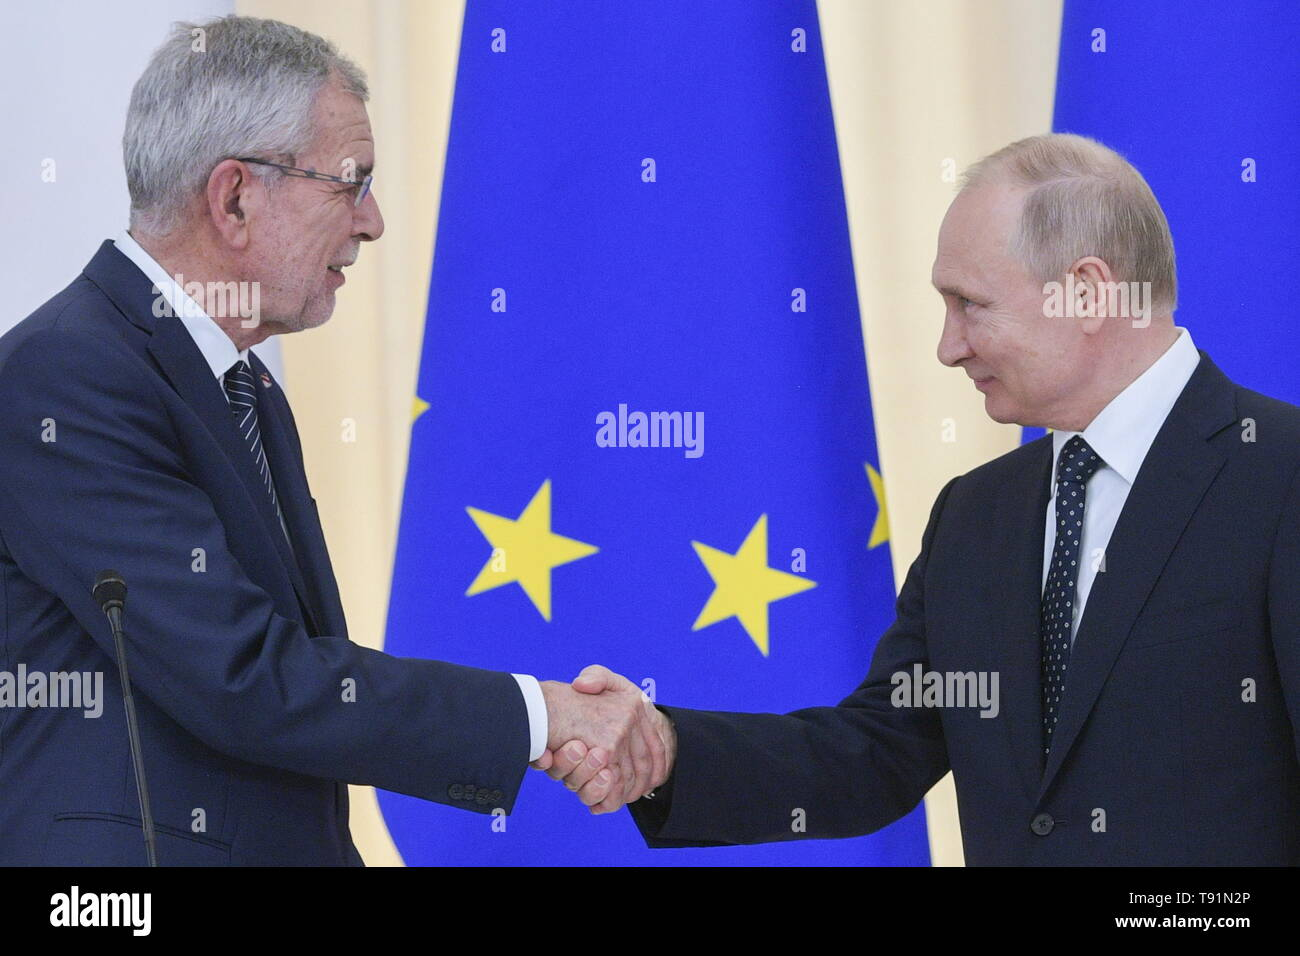 SOCHI, RUSSIA – MAY 15, 2019: Austria's President Alexander Van der Bellen (L) shakes hands with Russia's President Vladimir Putin during a joint news conference following their talks, at the Rus health resort. Alexei Druzhinin/Russian Presidential Press and Information Office/TASS Stock Photo